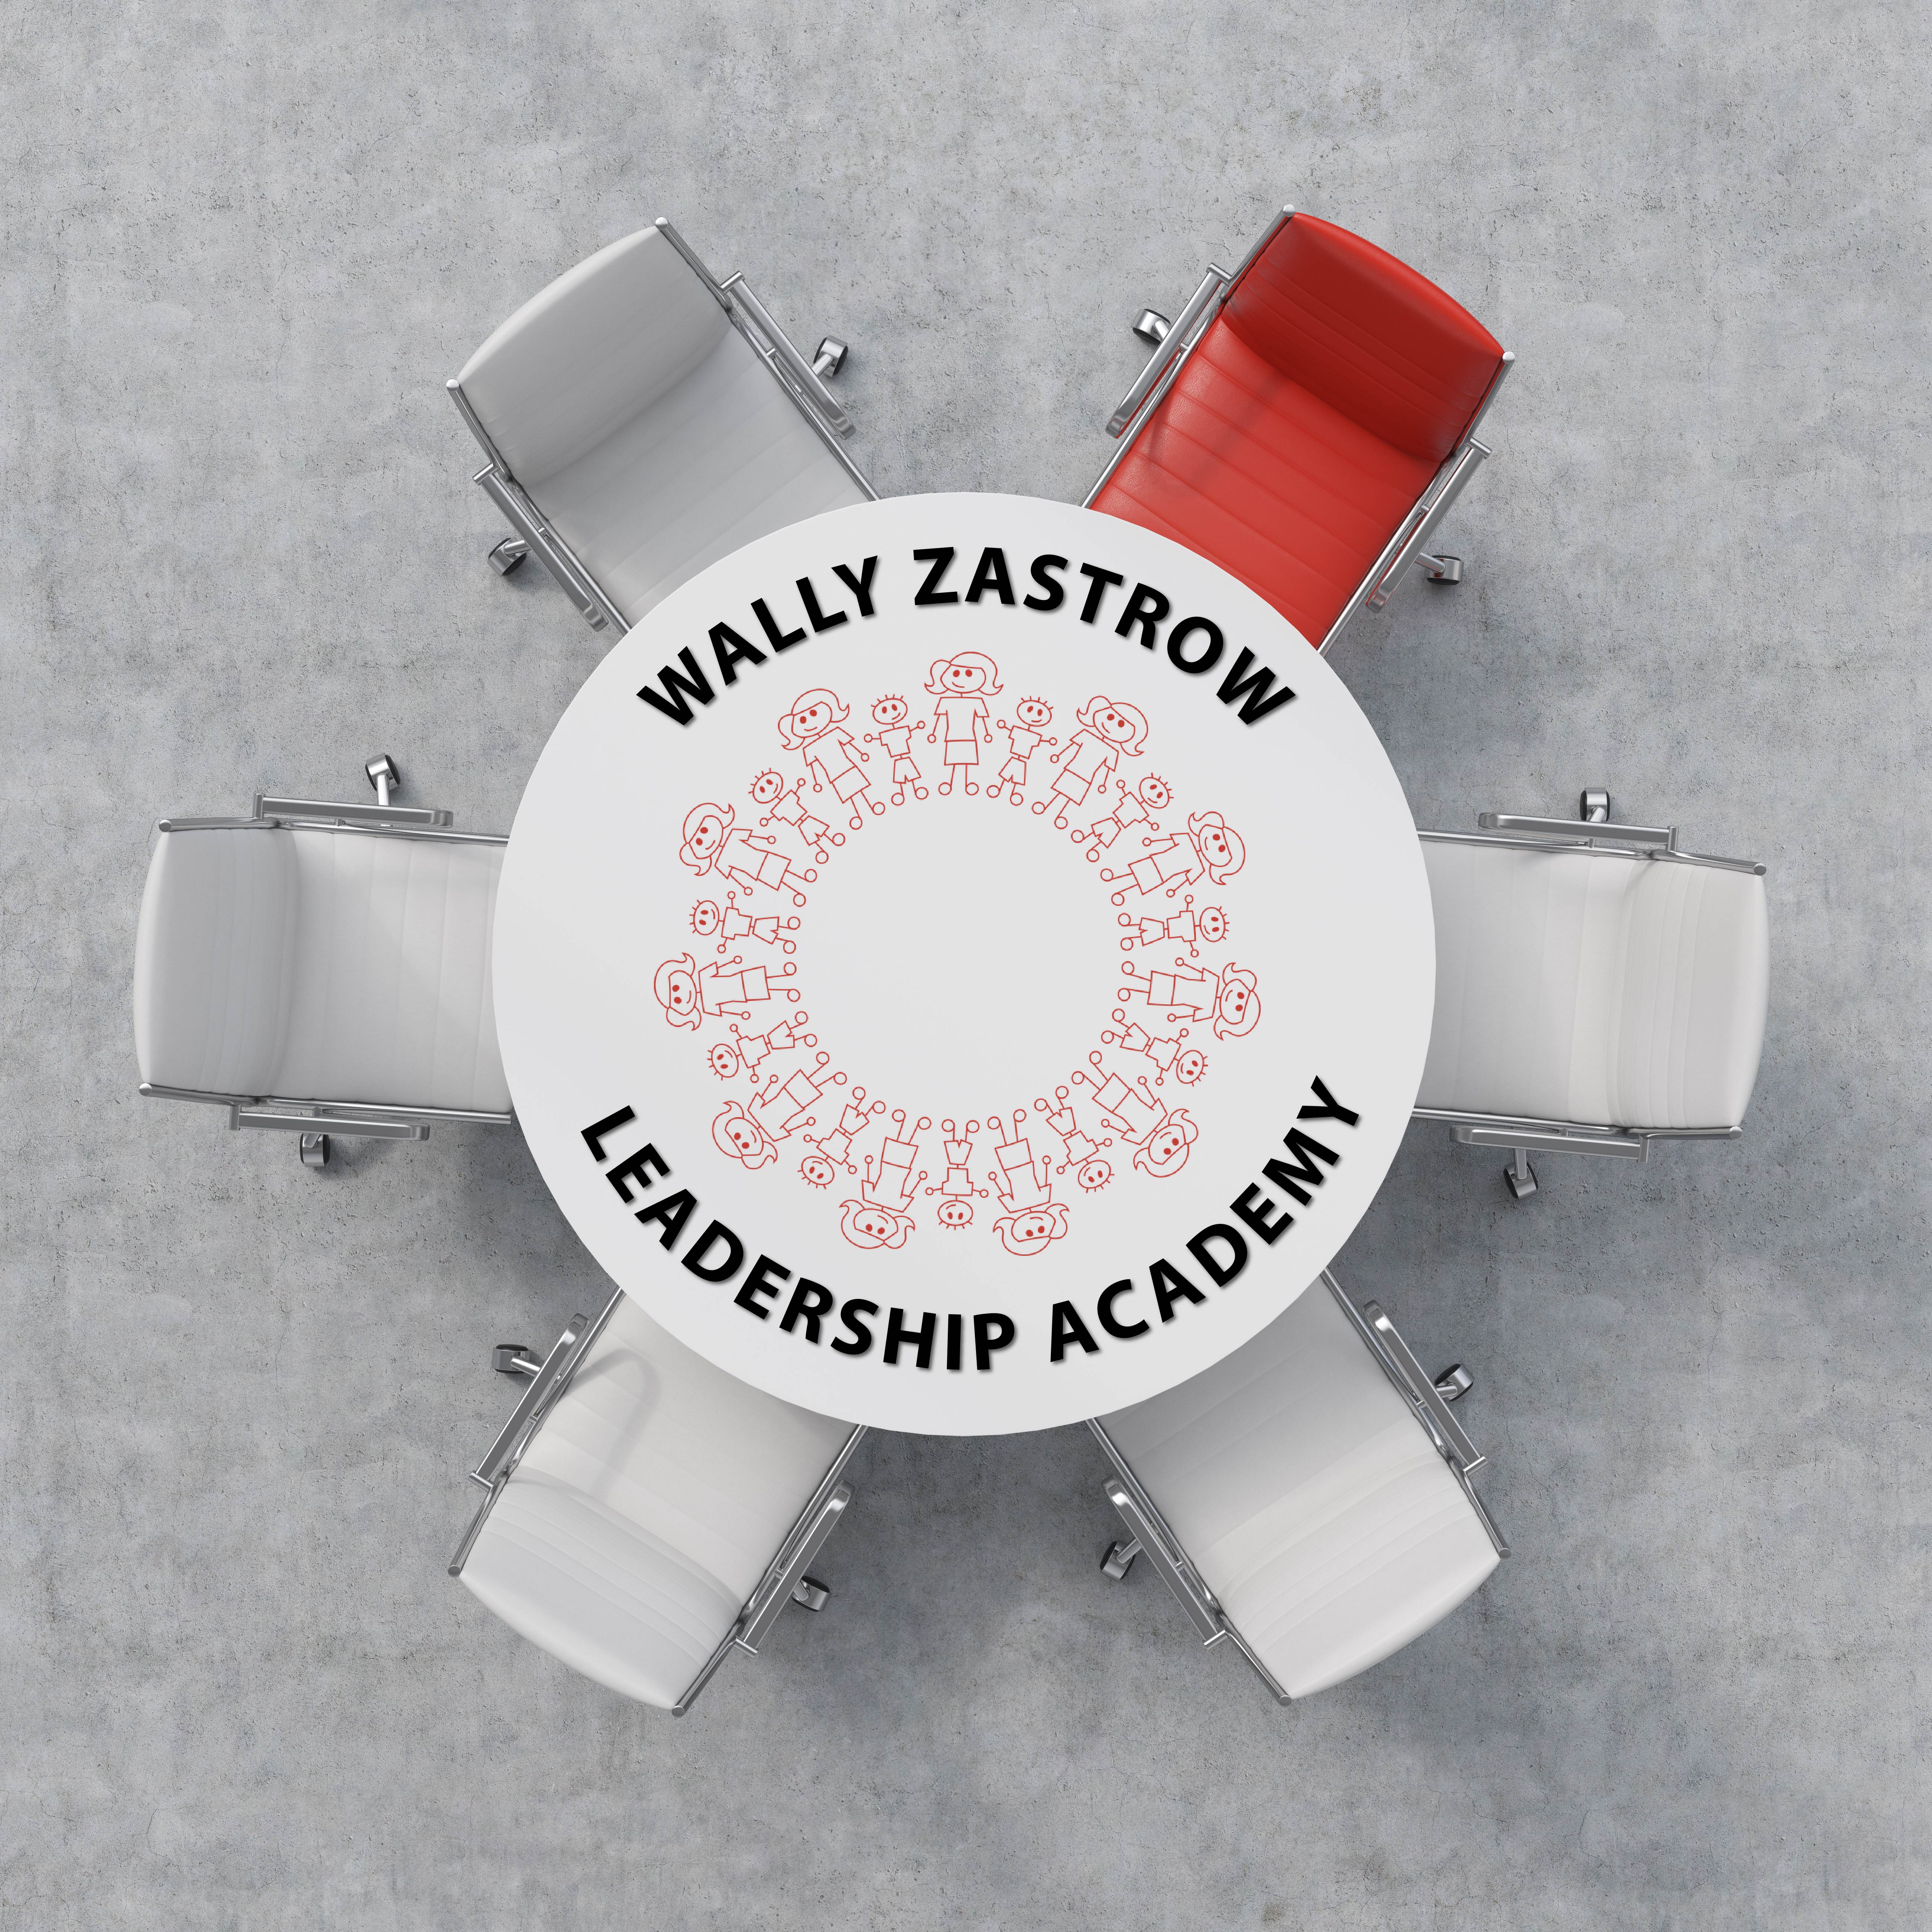 Wally Zastrow Leadership Academy: Your Leadership Pulse